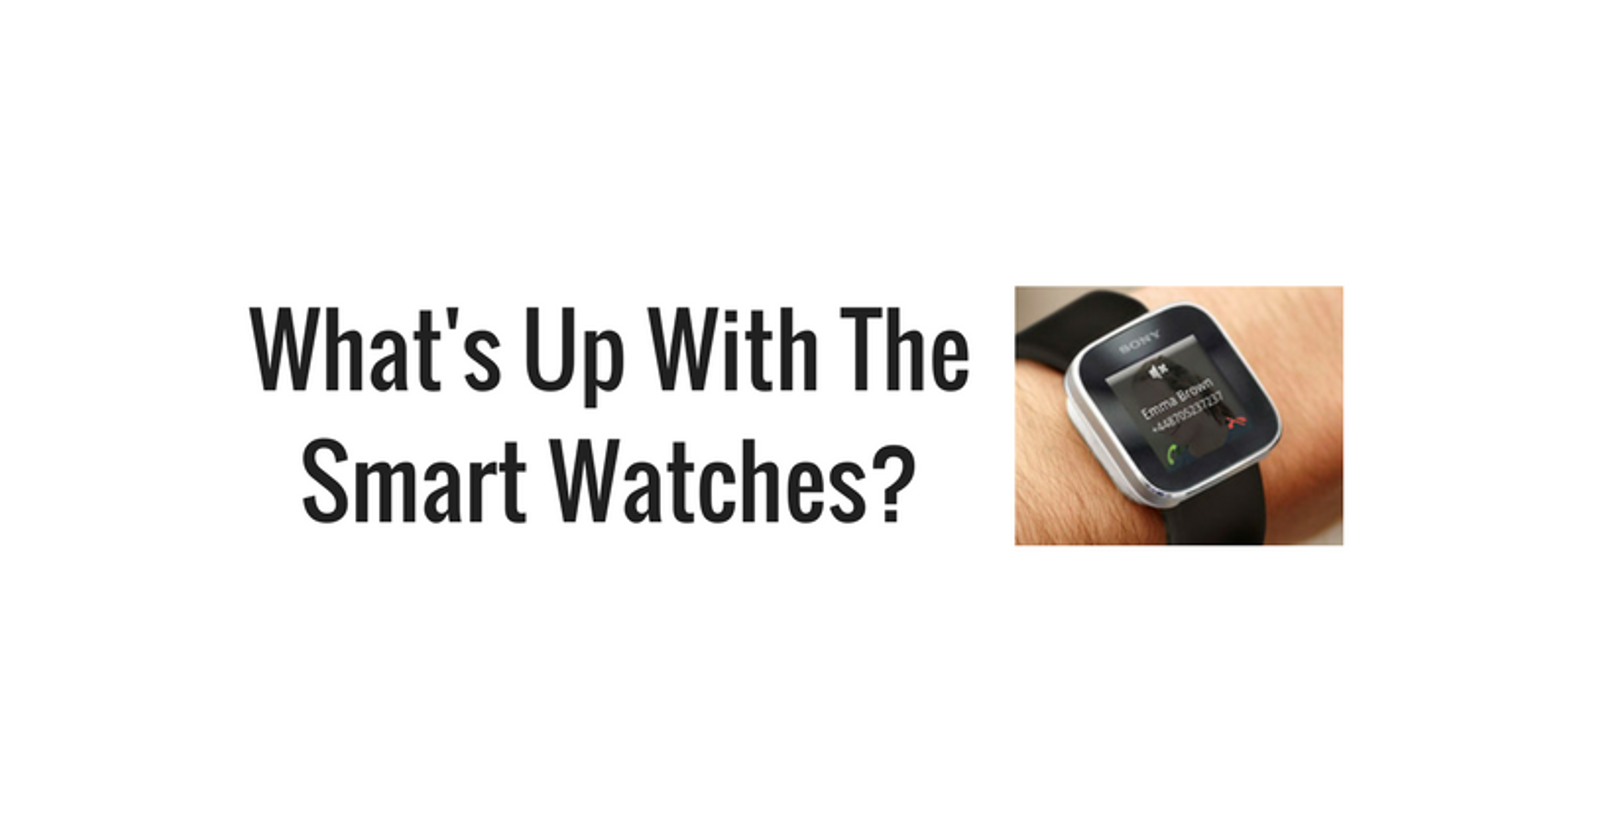 What's up with the Smart Watches?